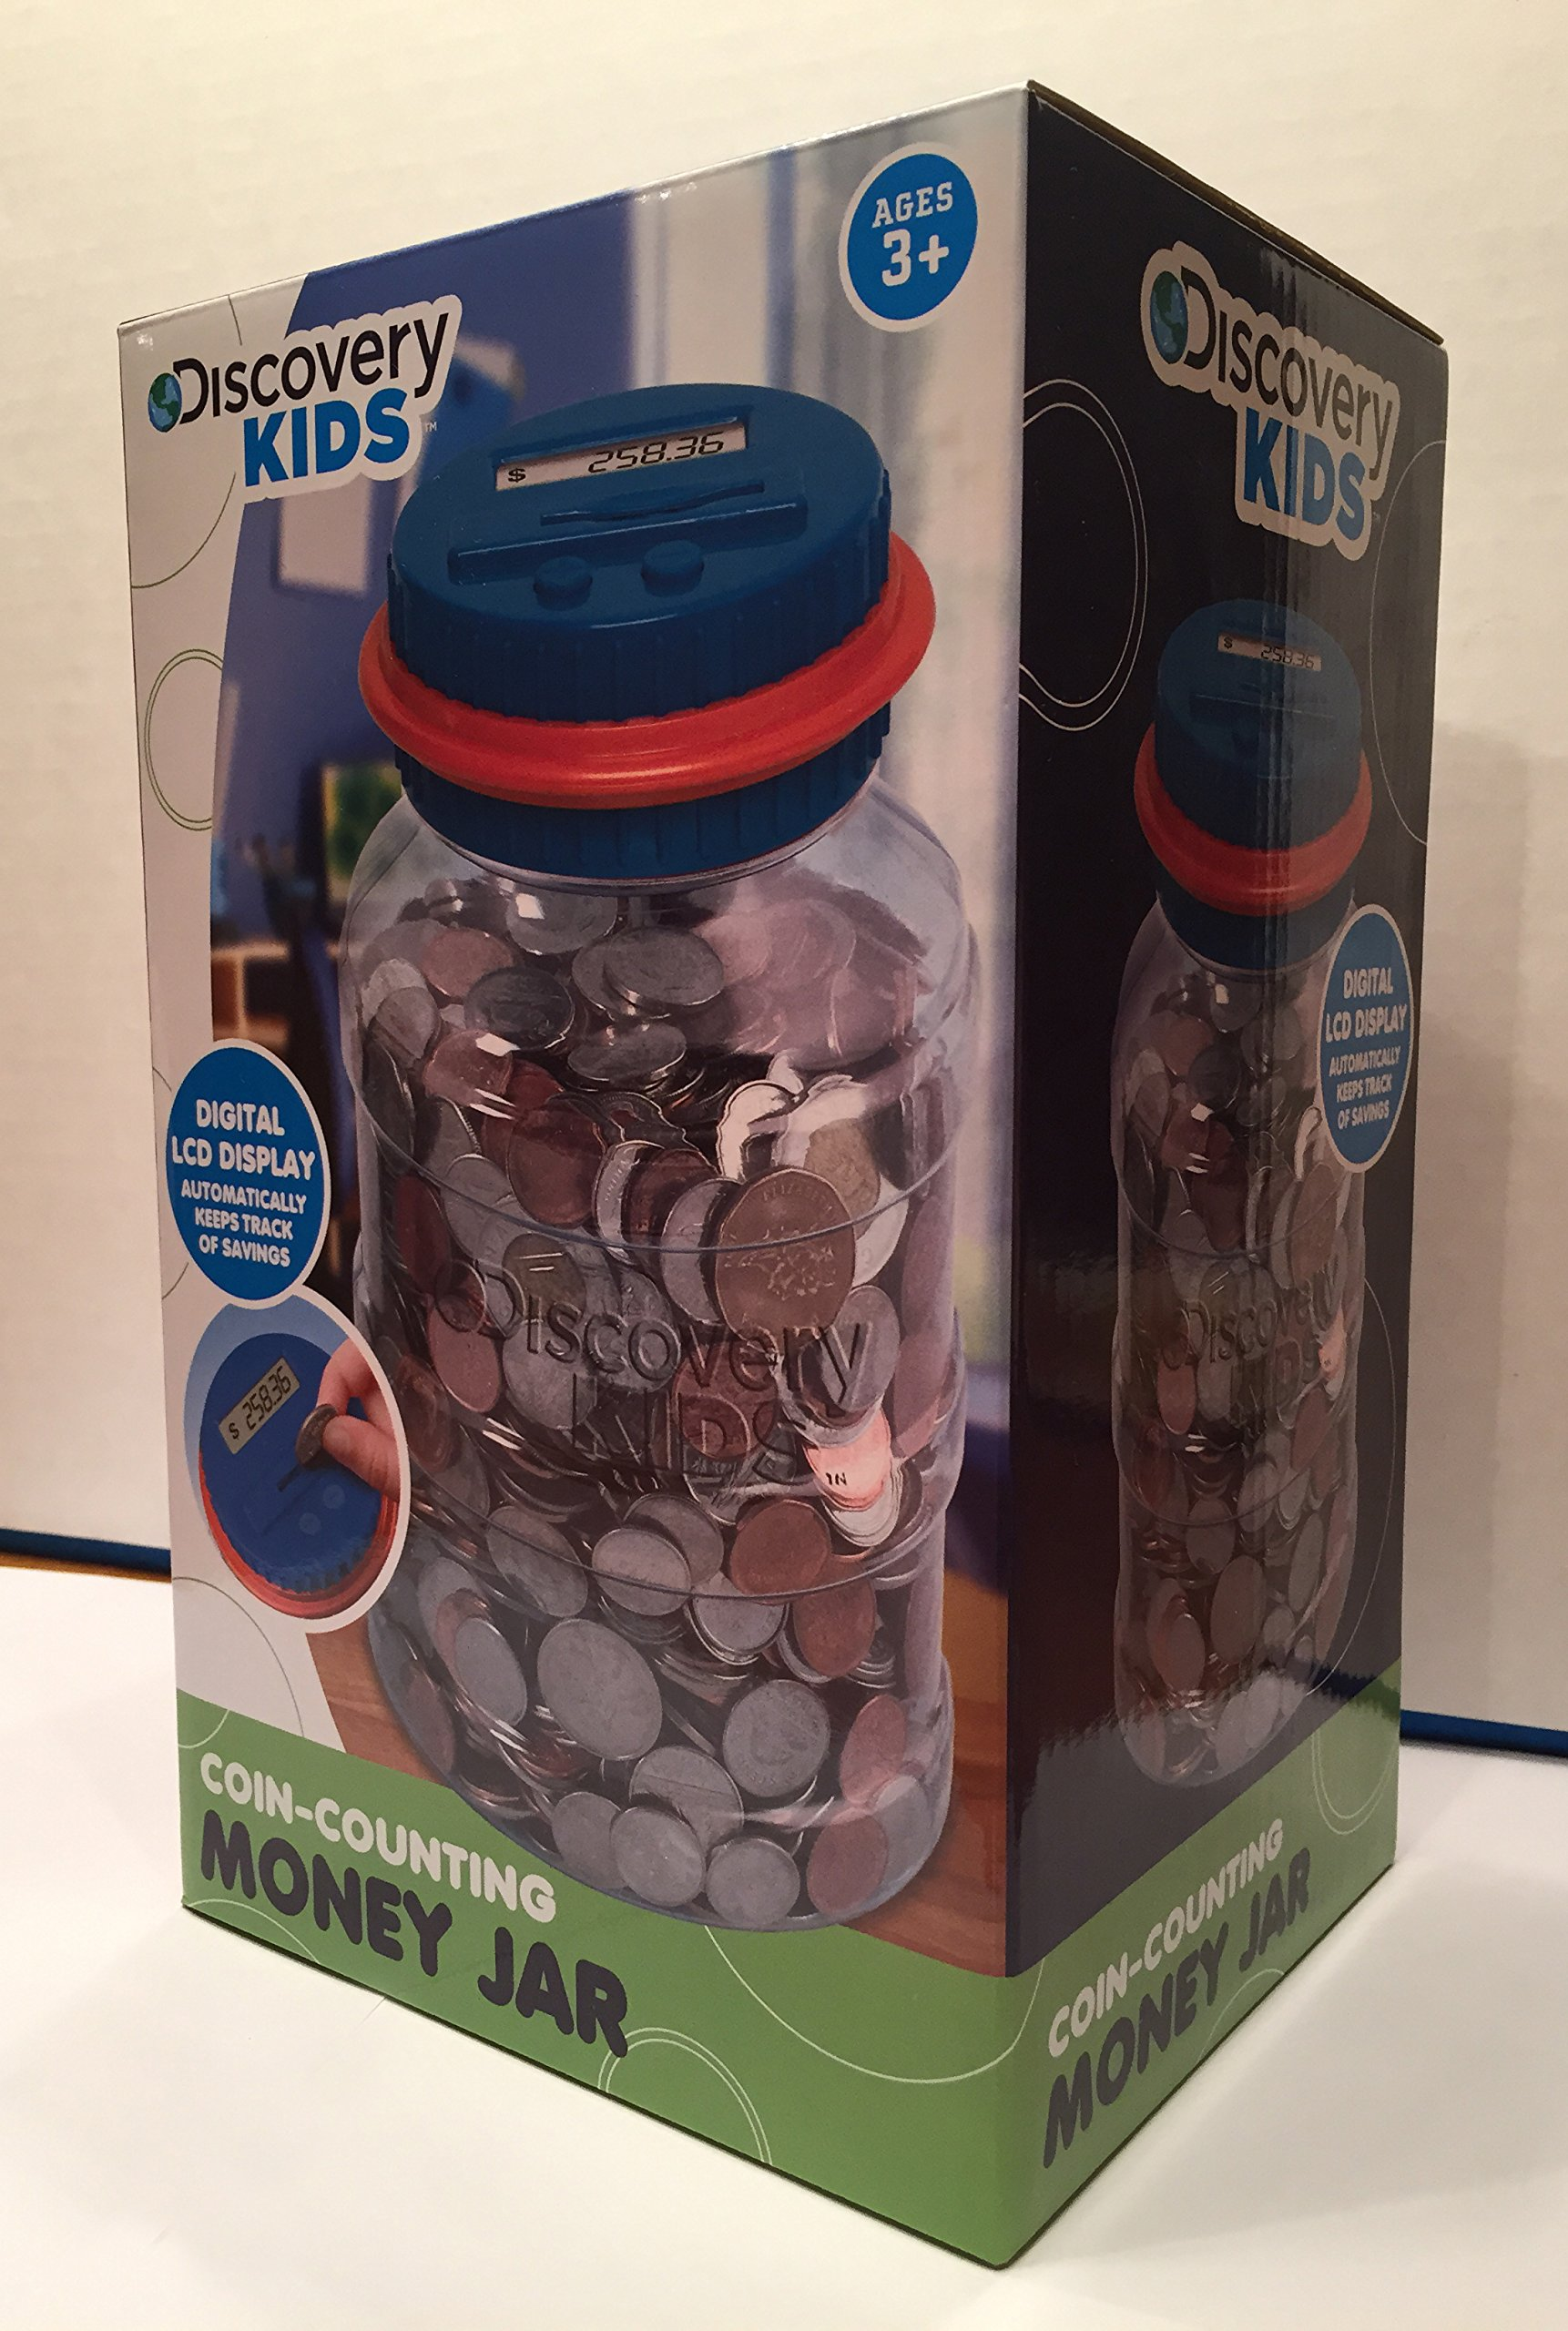 Discovery kids coin counting money jar electronic bank digital coin counter b ebay - Coin bank that counts money ...